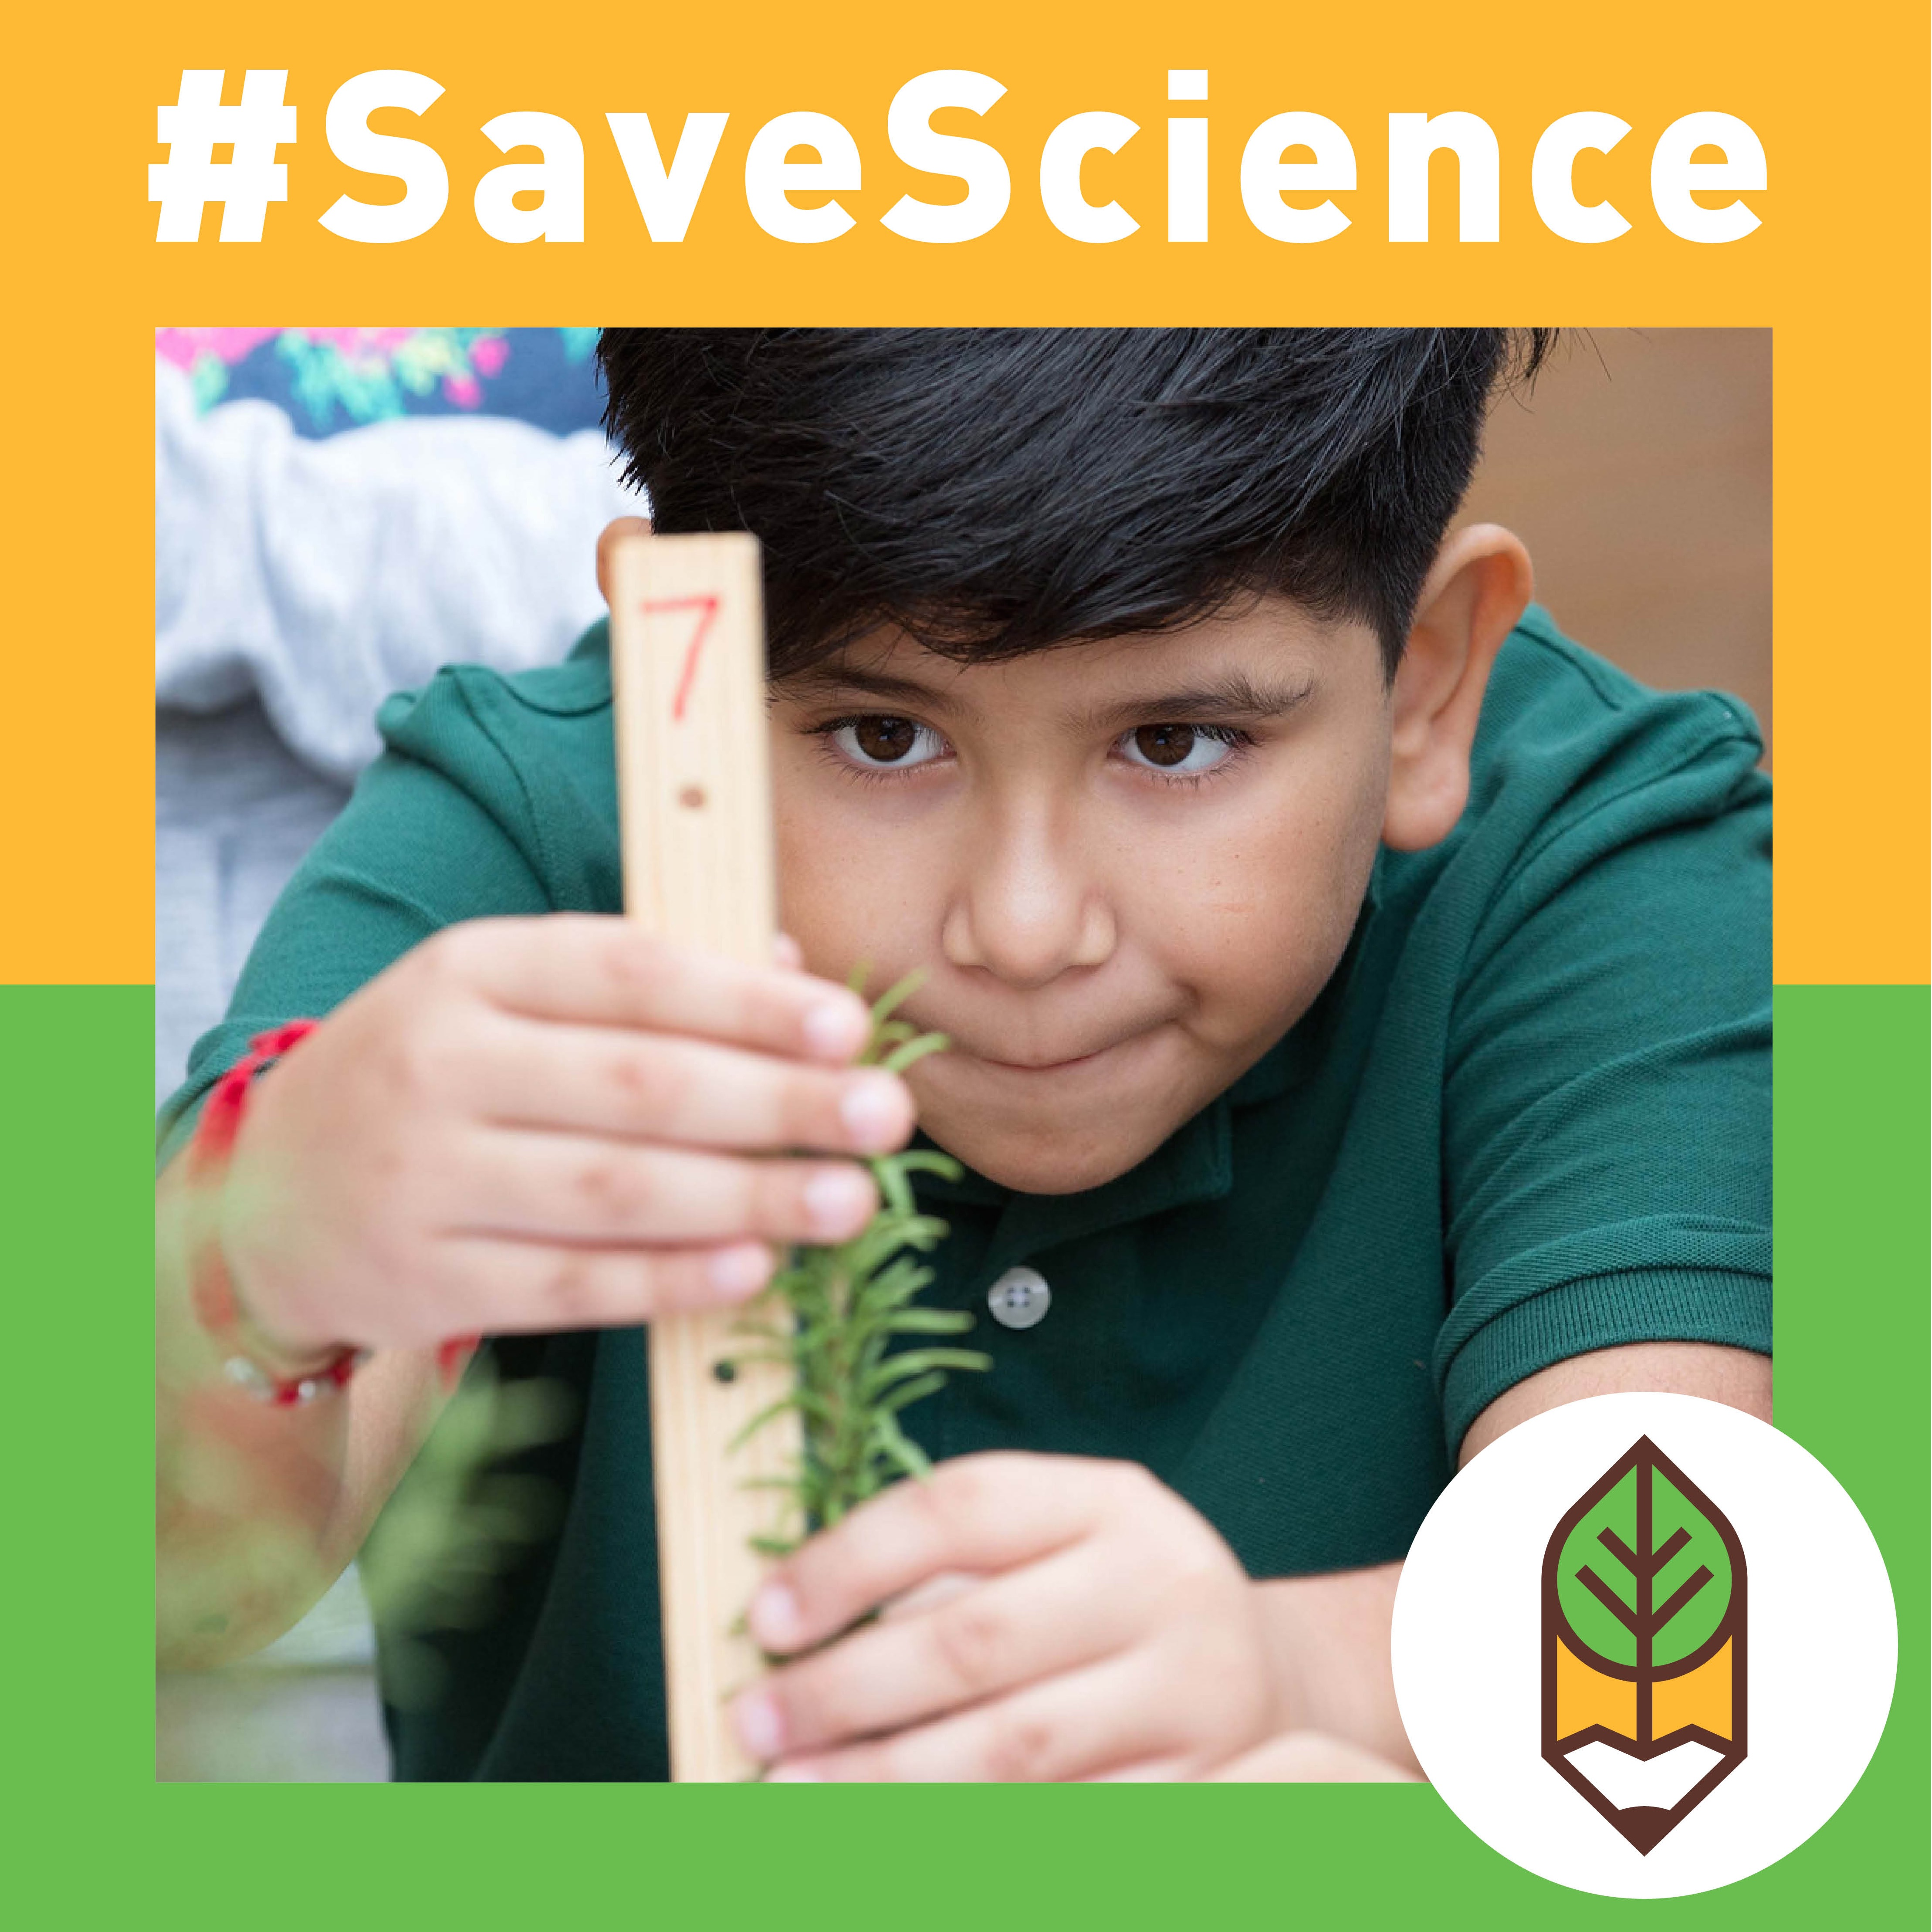 savescience_kids_22